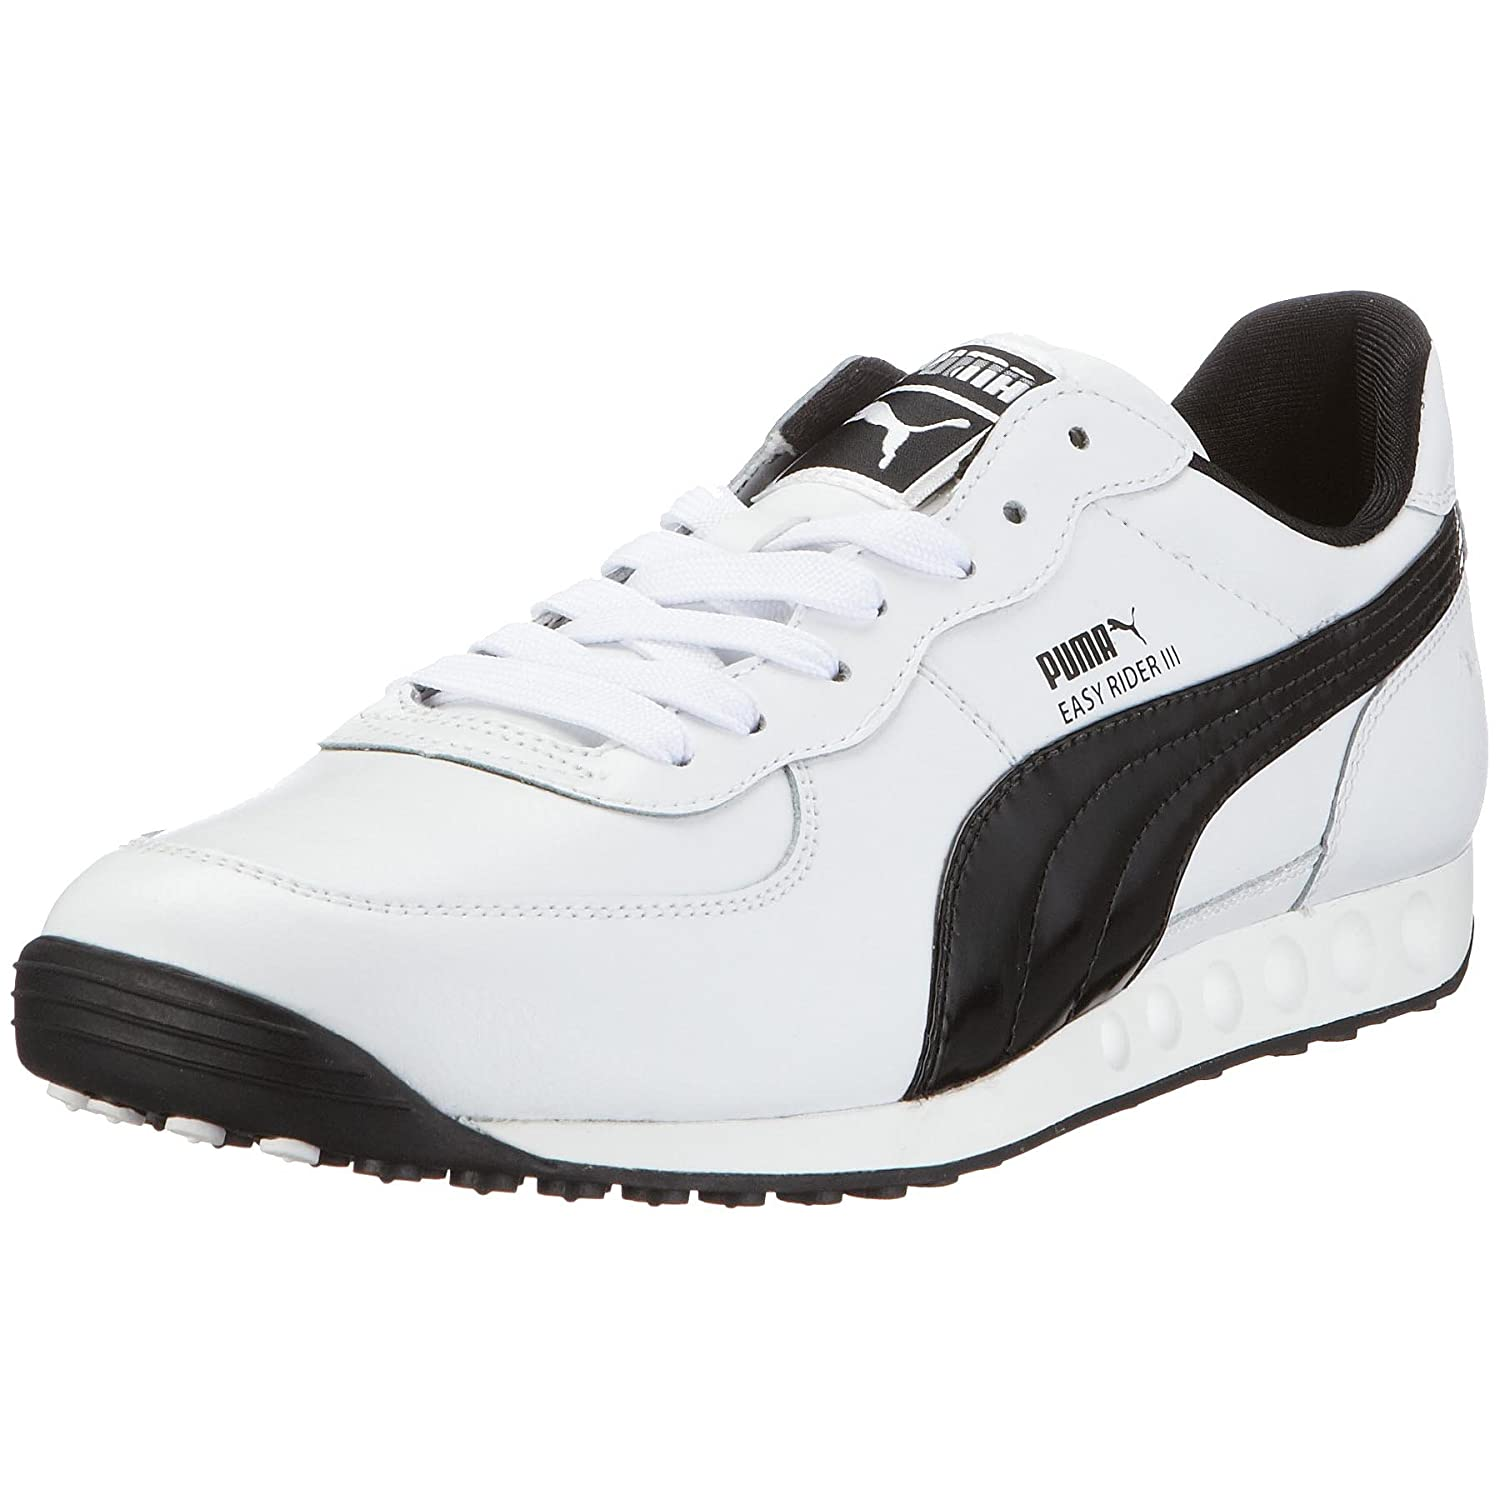 Puma Easy Rider III Leather Mens Trainers 350160 01 White ...